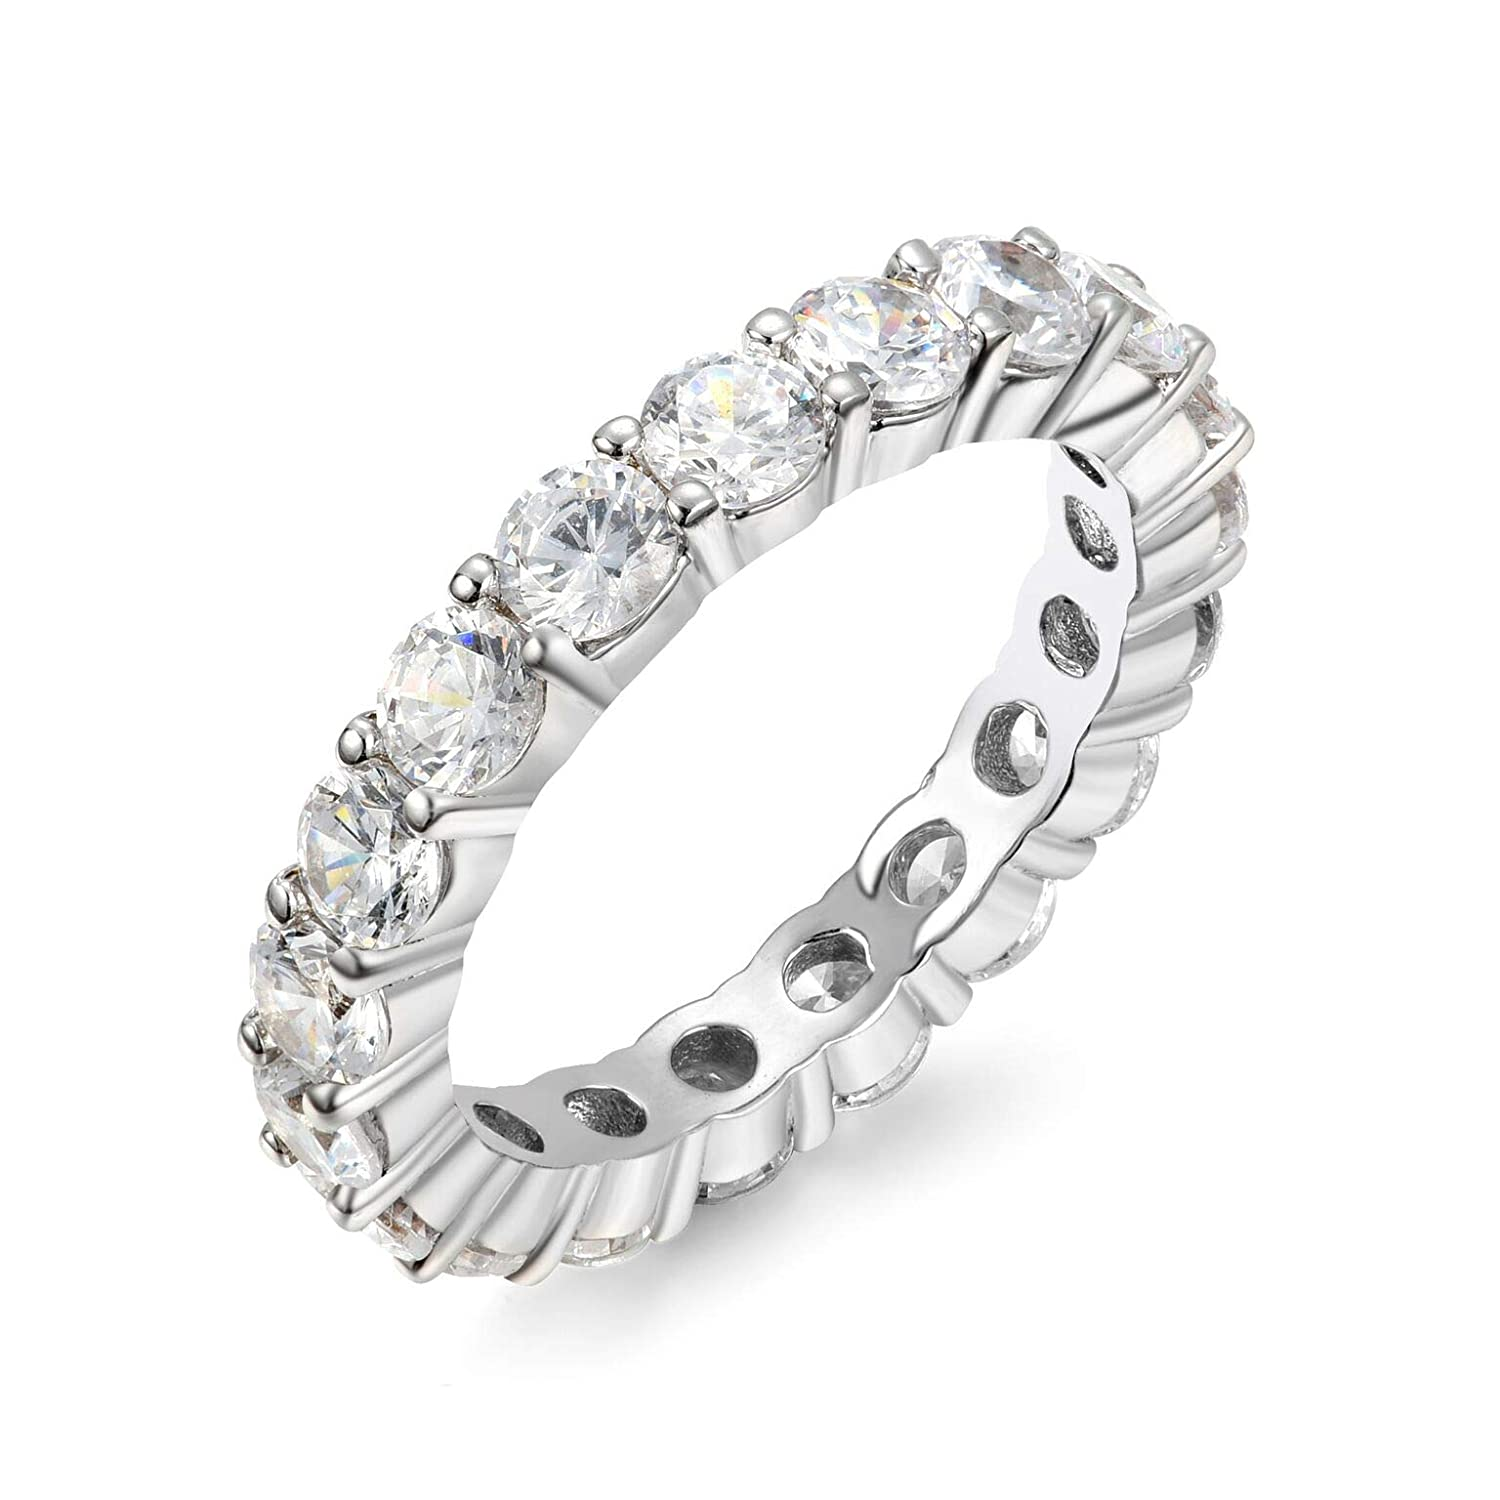 Gemstone Fine Jewelry 2019 Fashion Aaa White Cubic Zirconia Round Sterling 925 Silver Eternity Ring Size 7